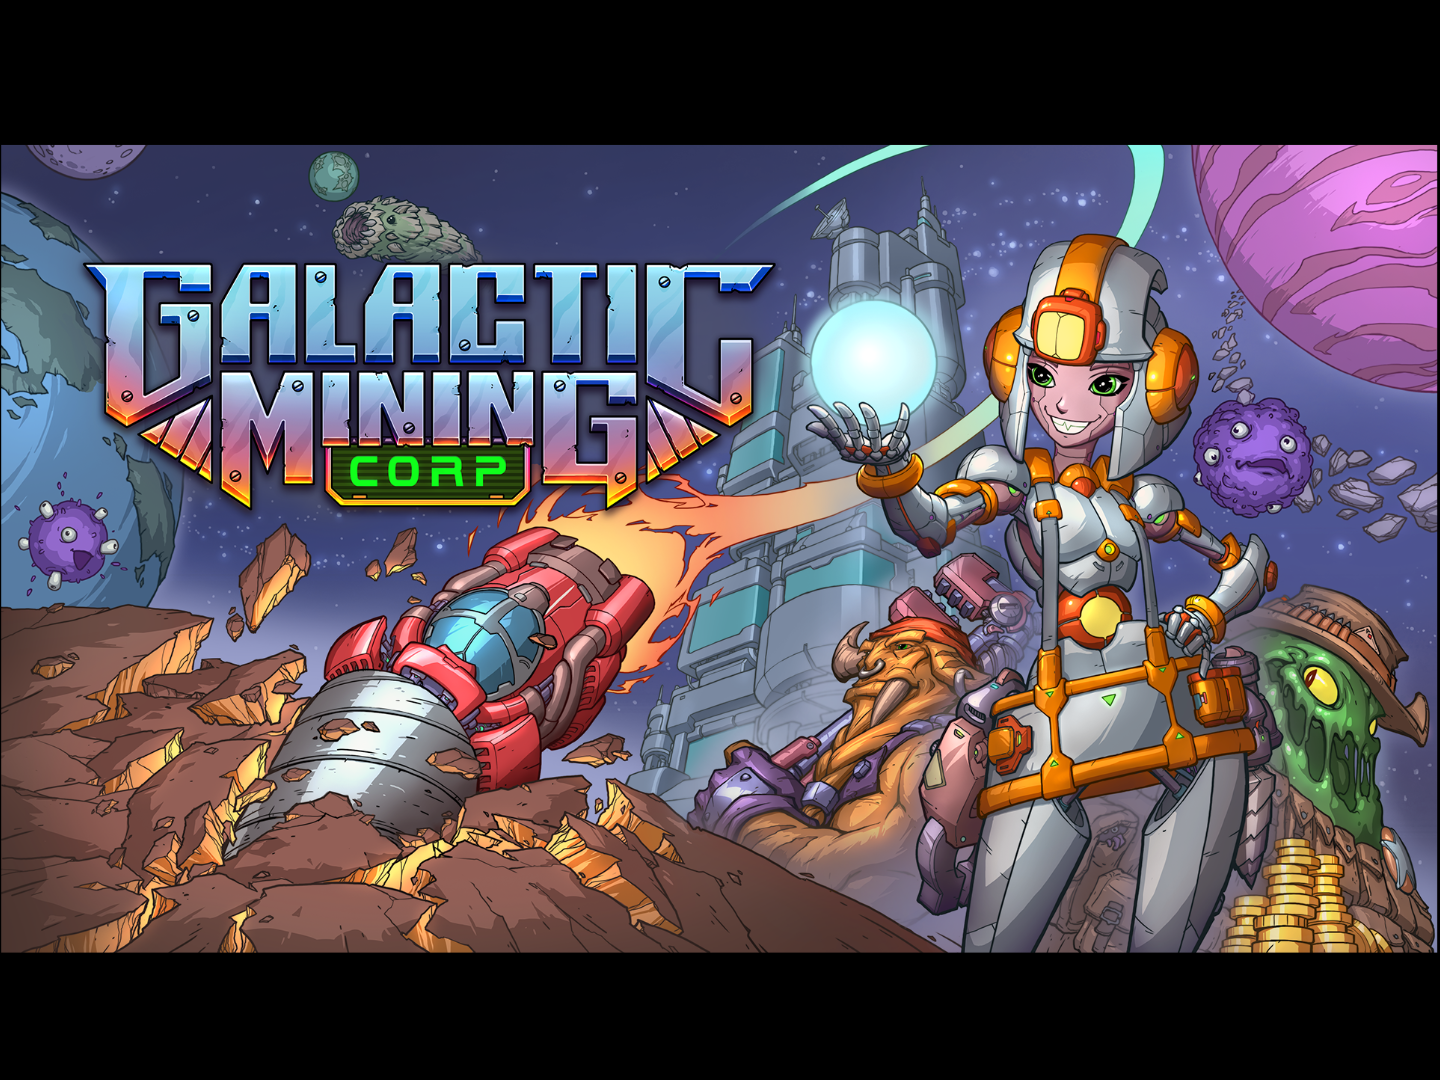 Galactic Mining Corp by Windybeard Games makes a HEFTY donation to support Gamers for Good.